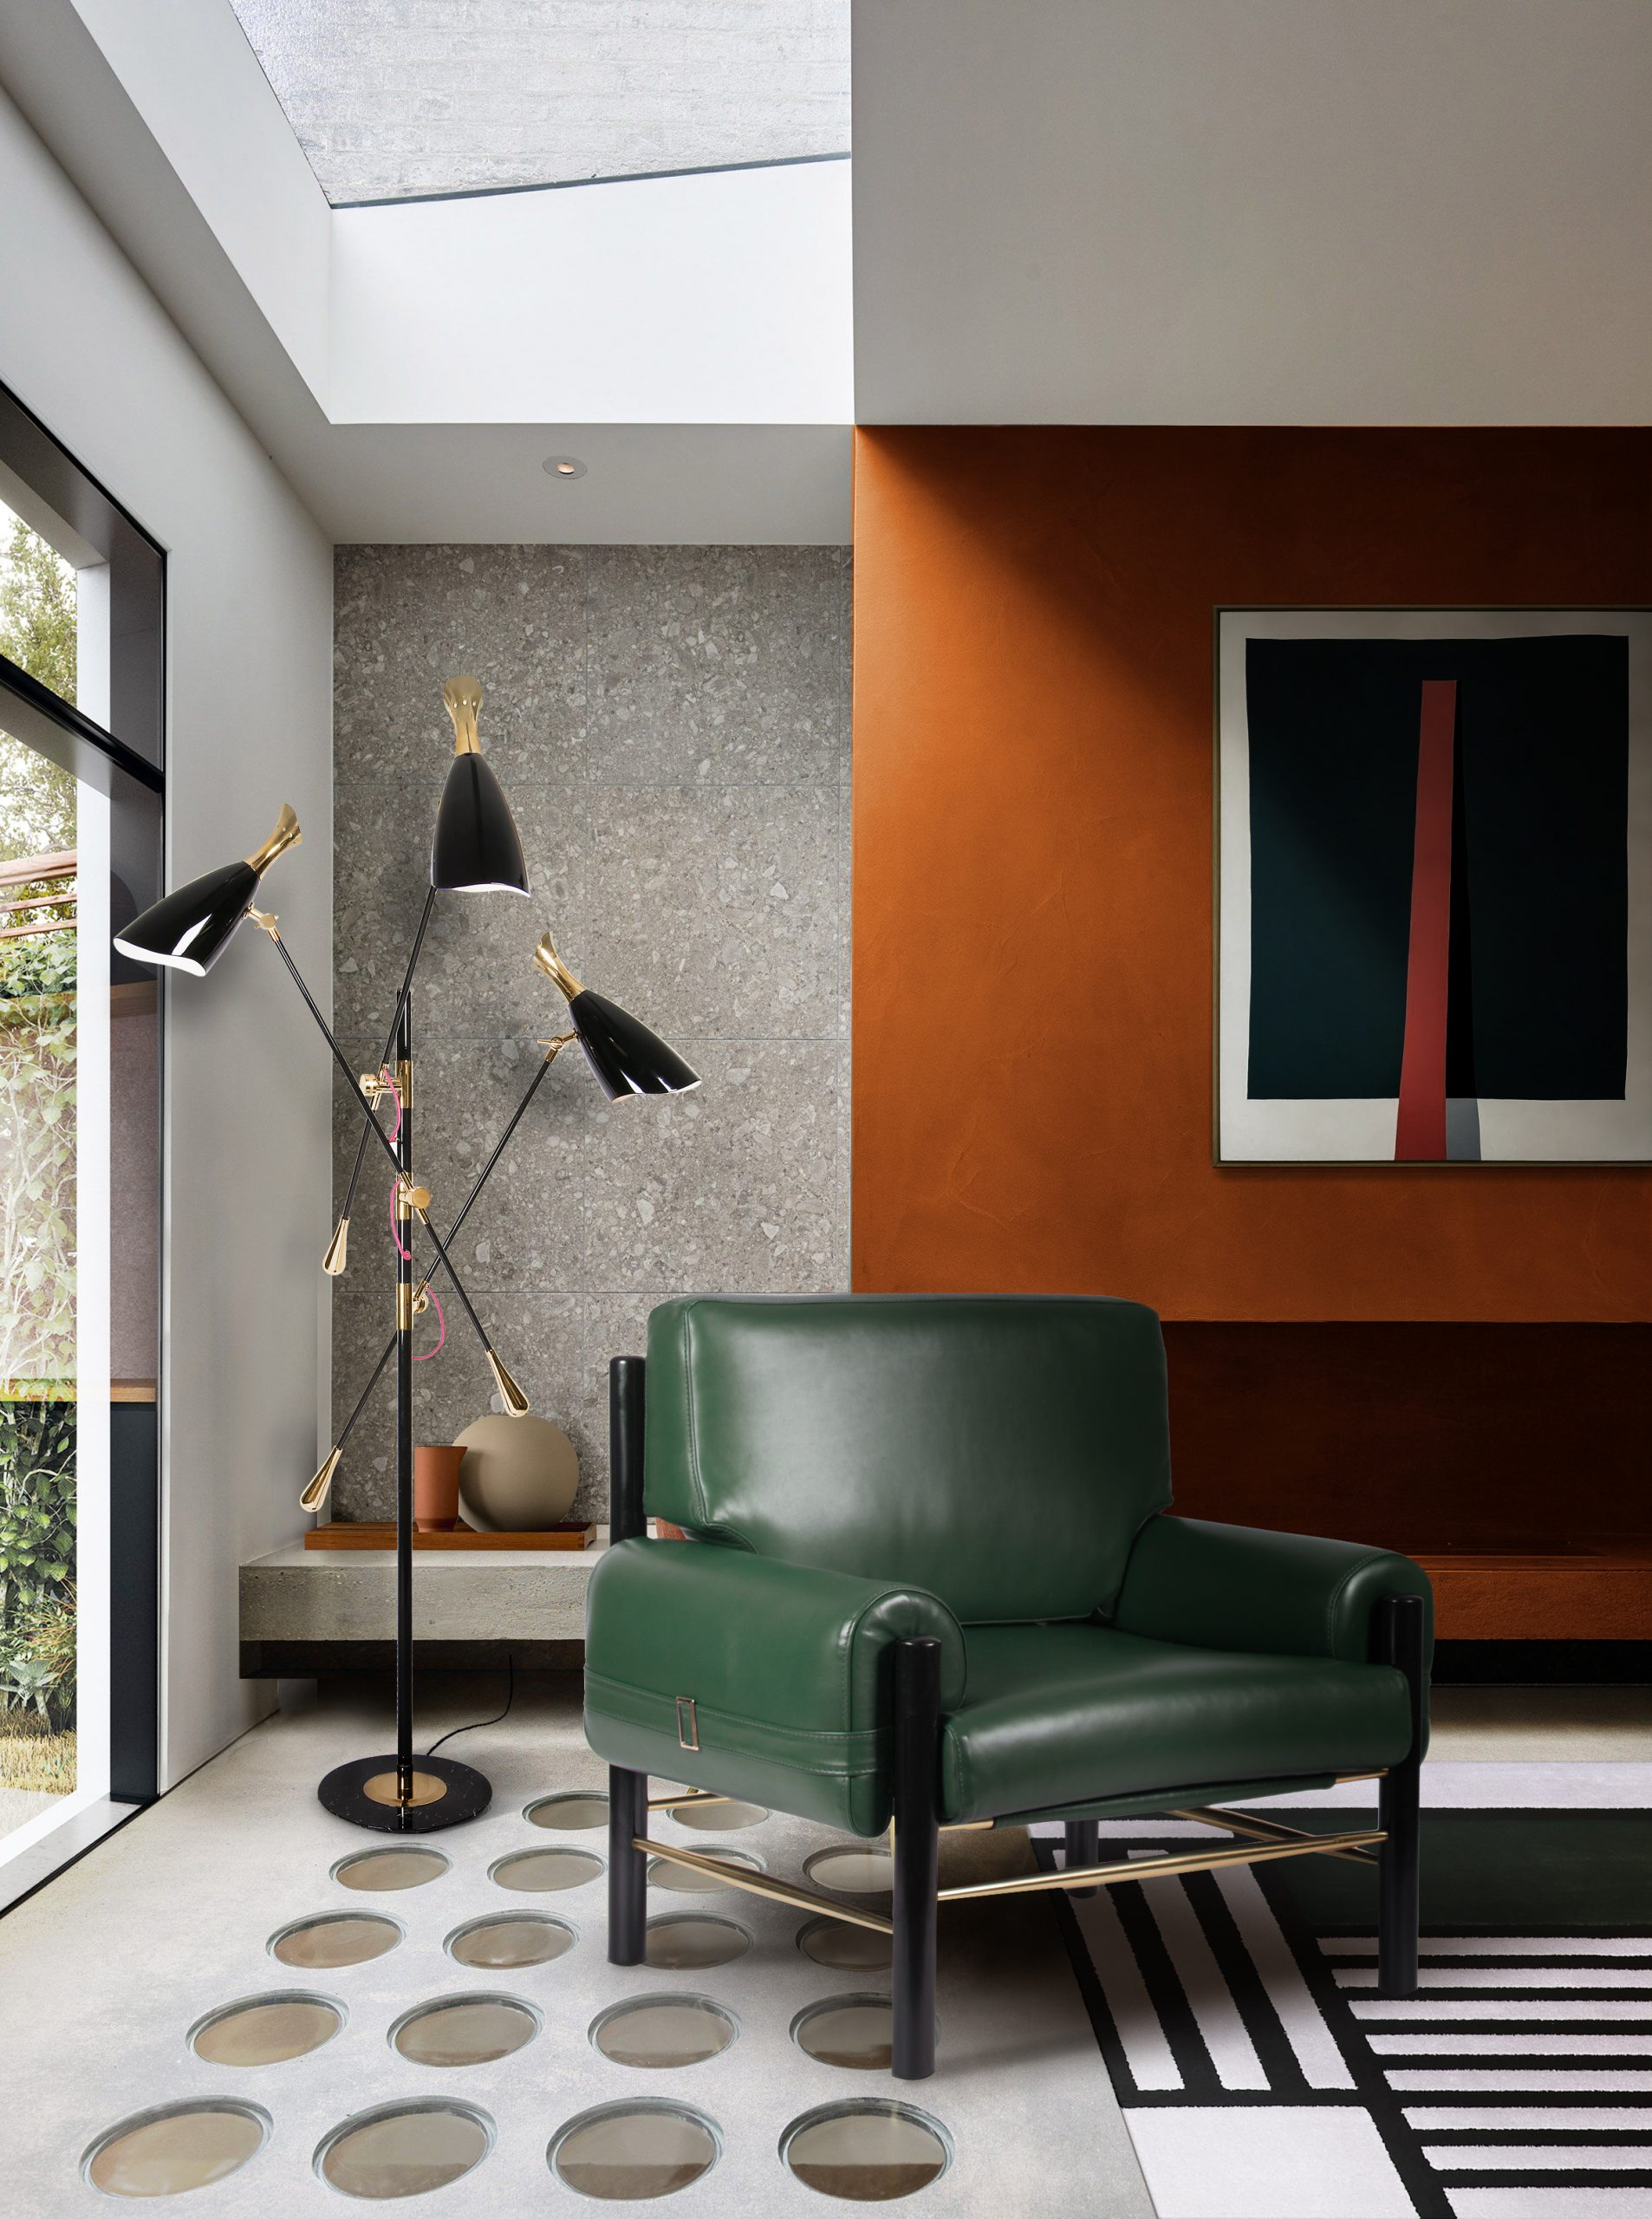 Why The World Is Obsessed With Mid-Century Modern Design? mid-century modern design Why The World Is Obsessed With Mid-Century Modern Design? Why The World Is Obsessed With Mid Century Modern Design scaled